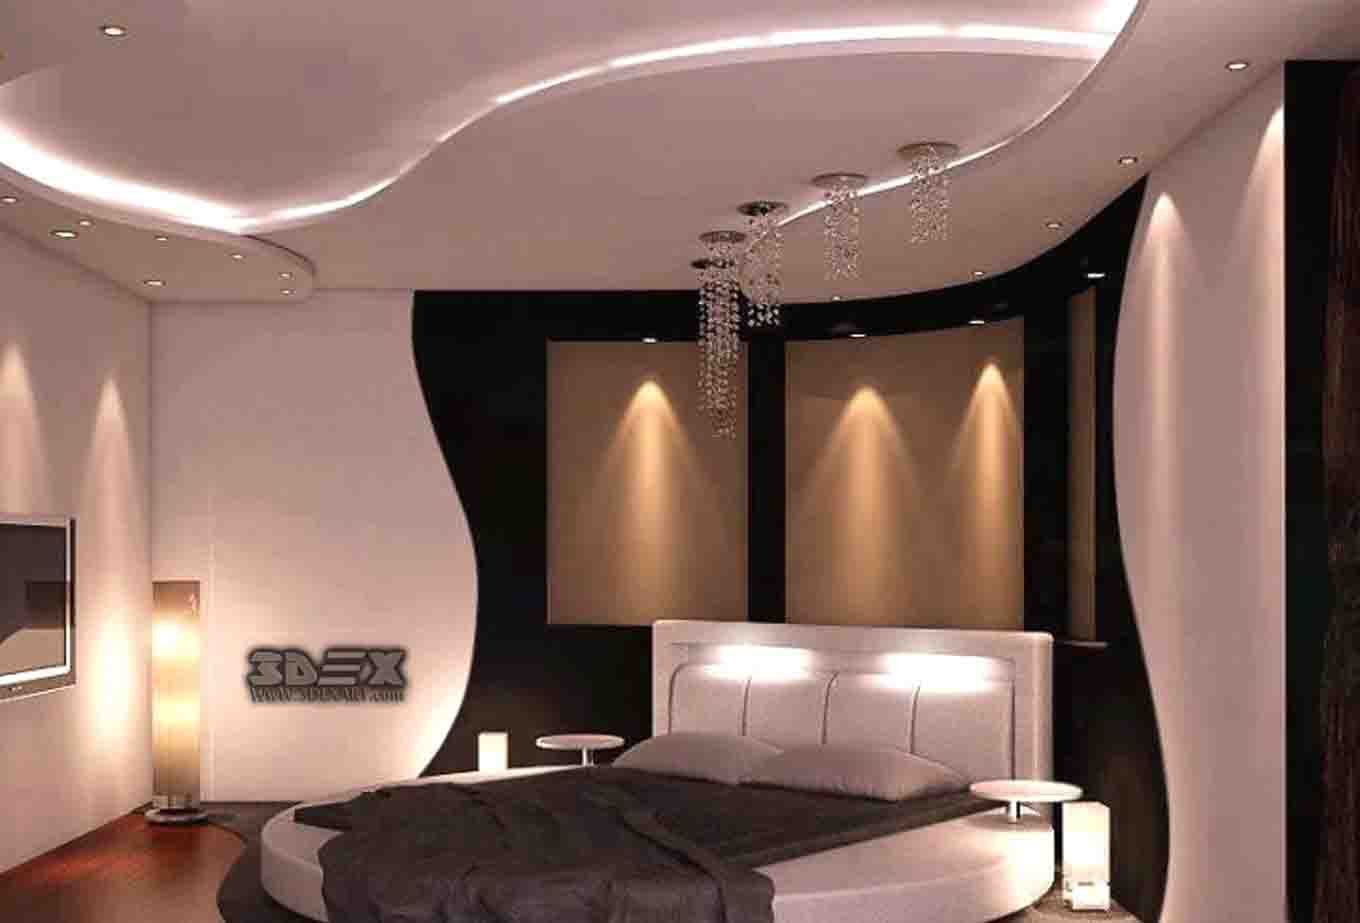 LatestPOPdesignforbedroomnewfalseceilingdesignsideas - Latest fall ceiling designs for bedrooms